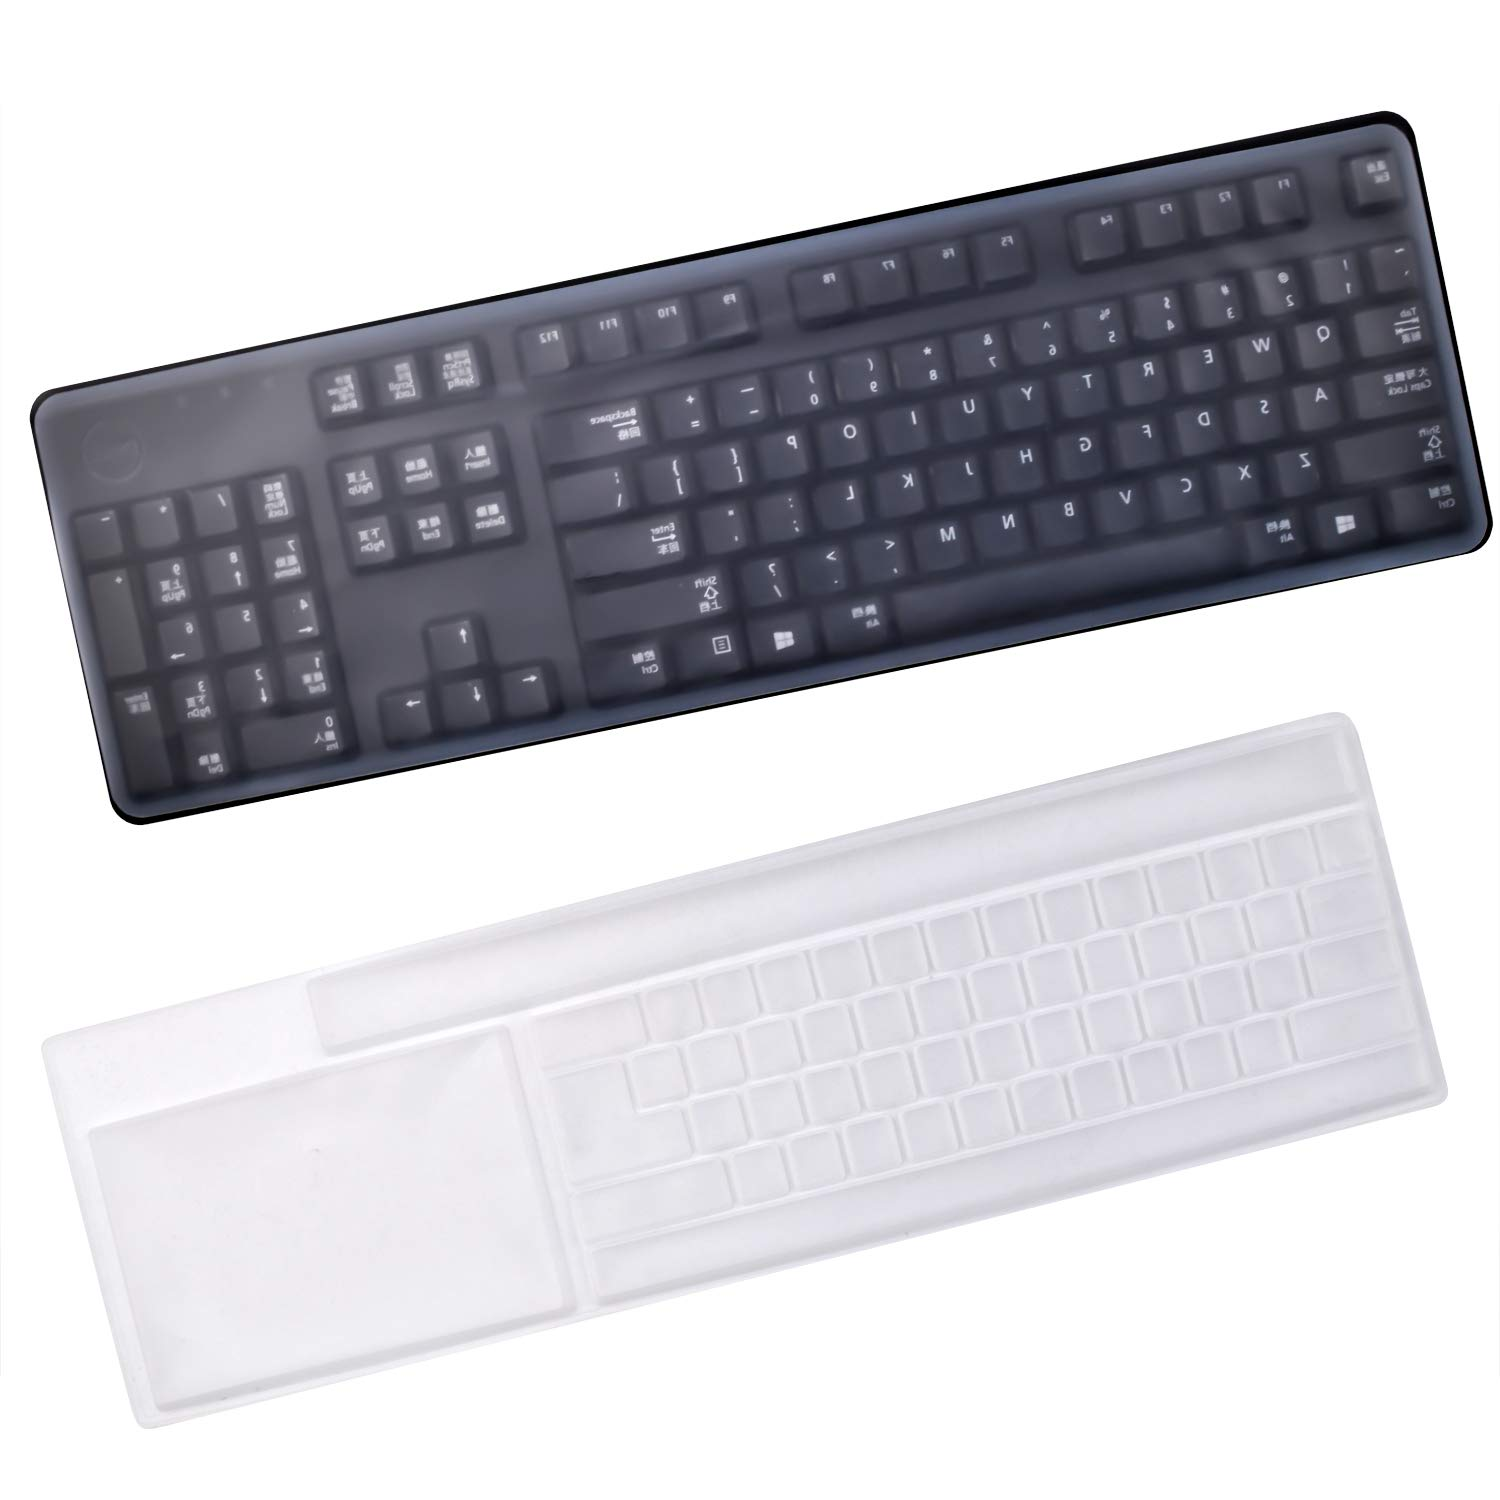 Keyboard Protection Cover 17.6 x 5.5 2 Pieces Anti-Dust Silicone Keyboard Protector Waterproof Clear Keyboard Skin Cover for Standard Size PC Computer Desktop Keyboards Size